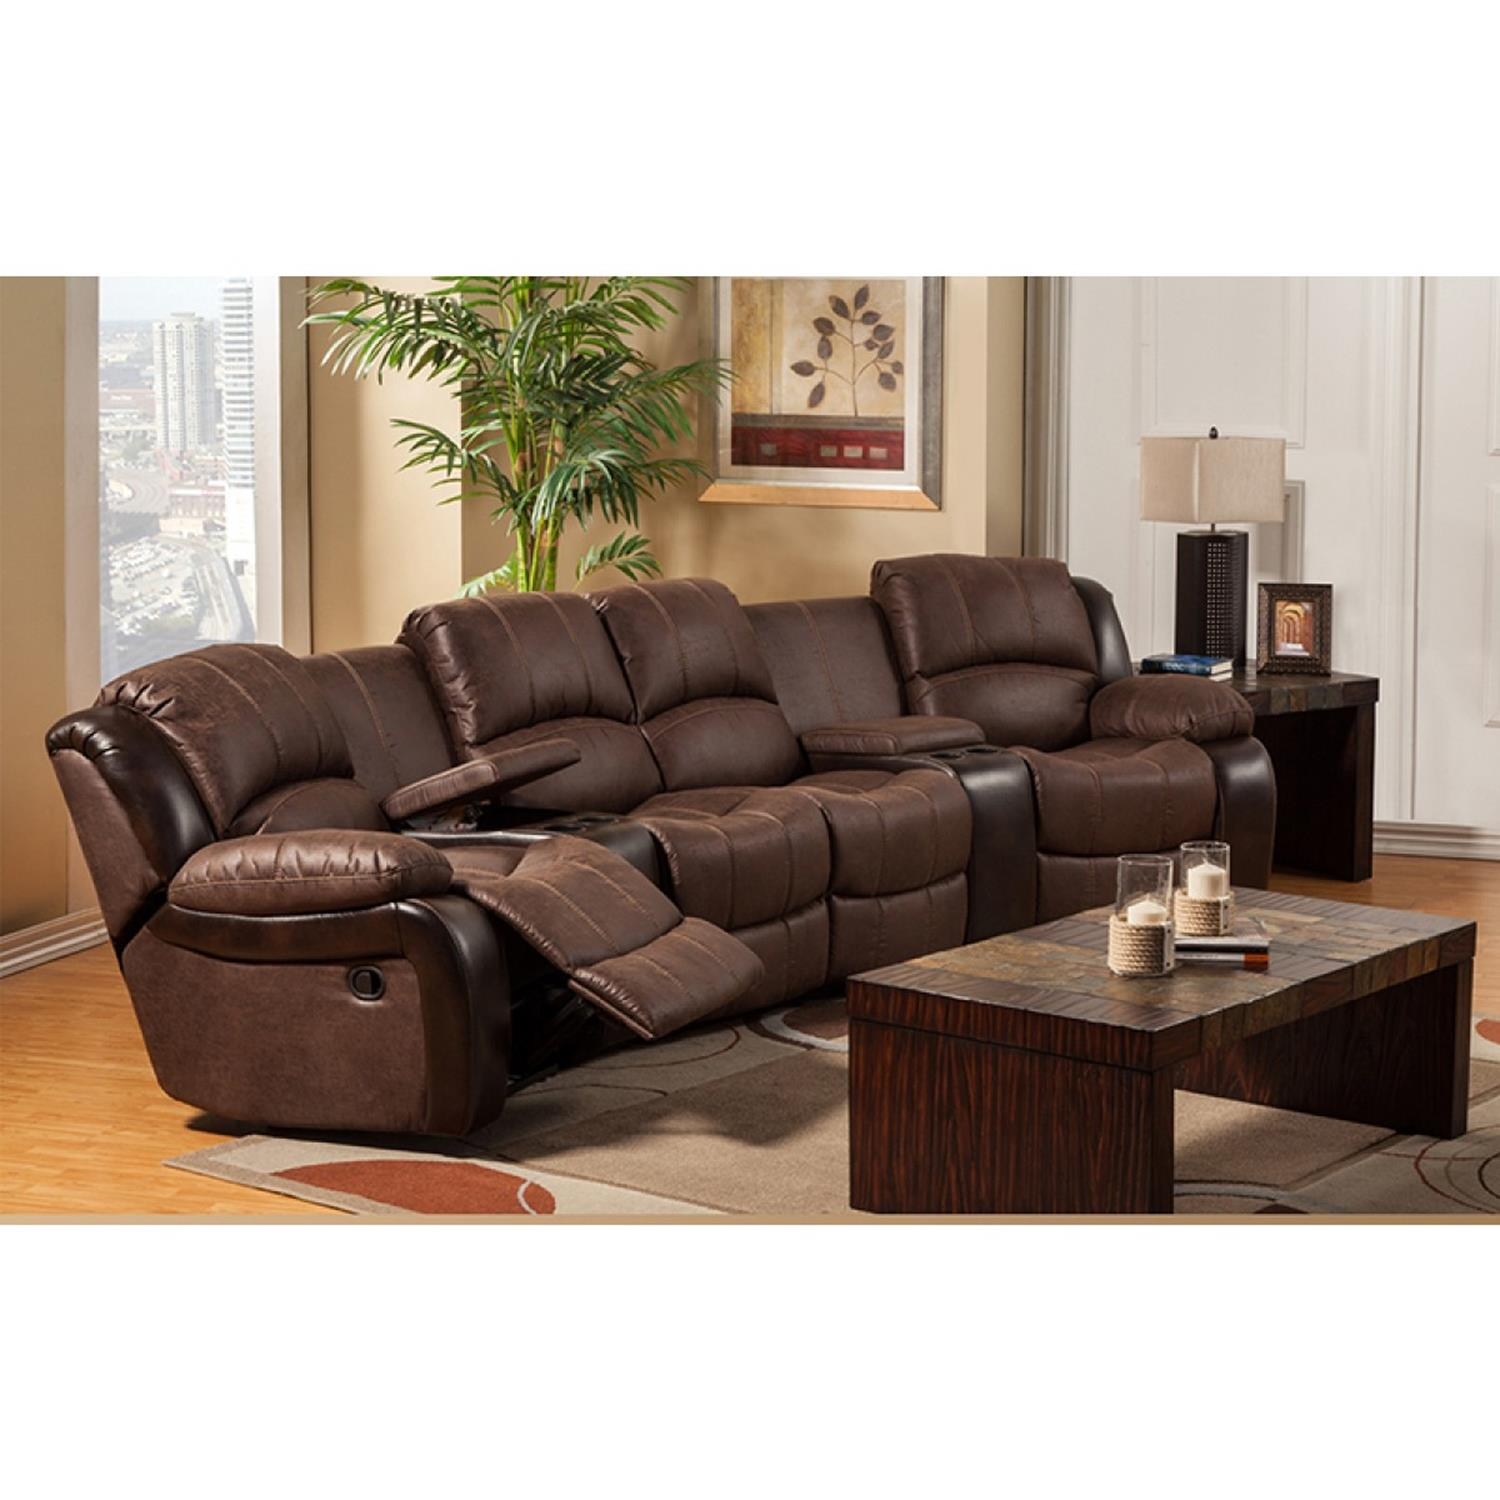 Theater Couches Home Theater Couch Living Room Furniture 5 Decorelated